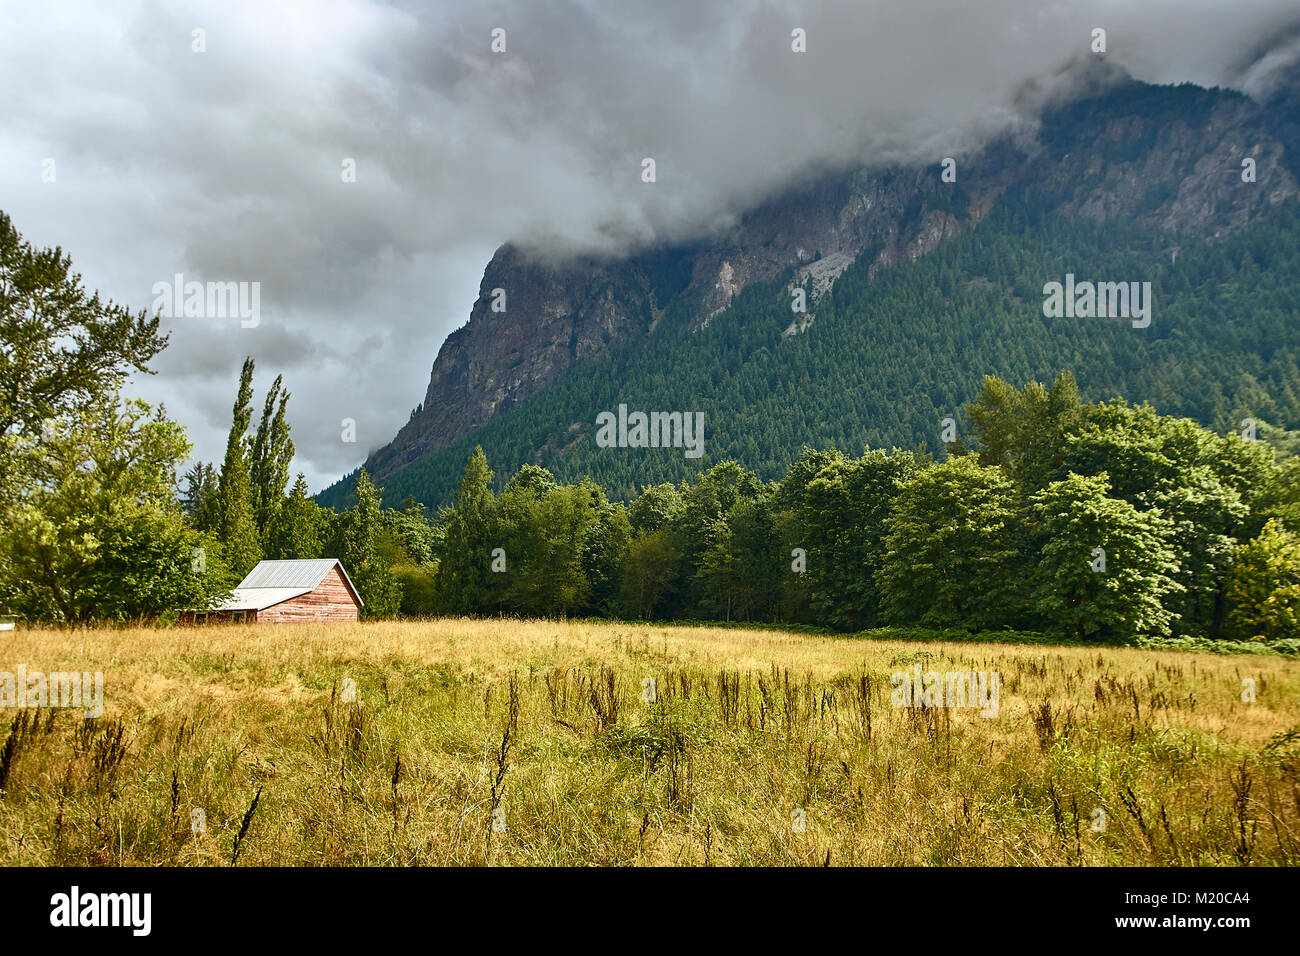 Small agricultural building nestled amongst some trees at the base of a cloud covered mountain just outside Fall - Stock Image